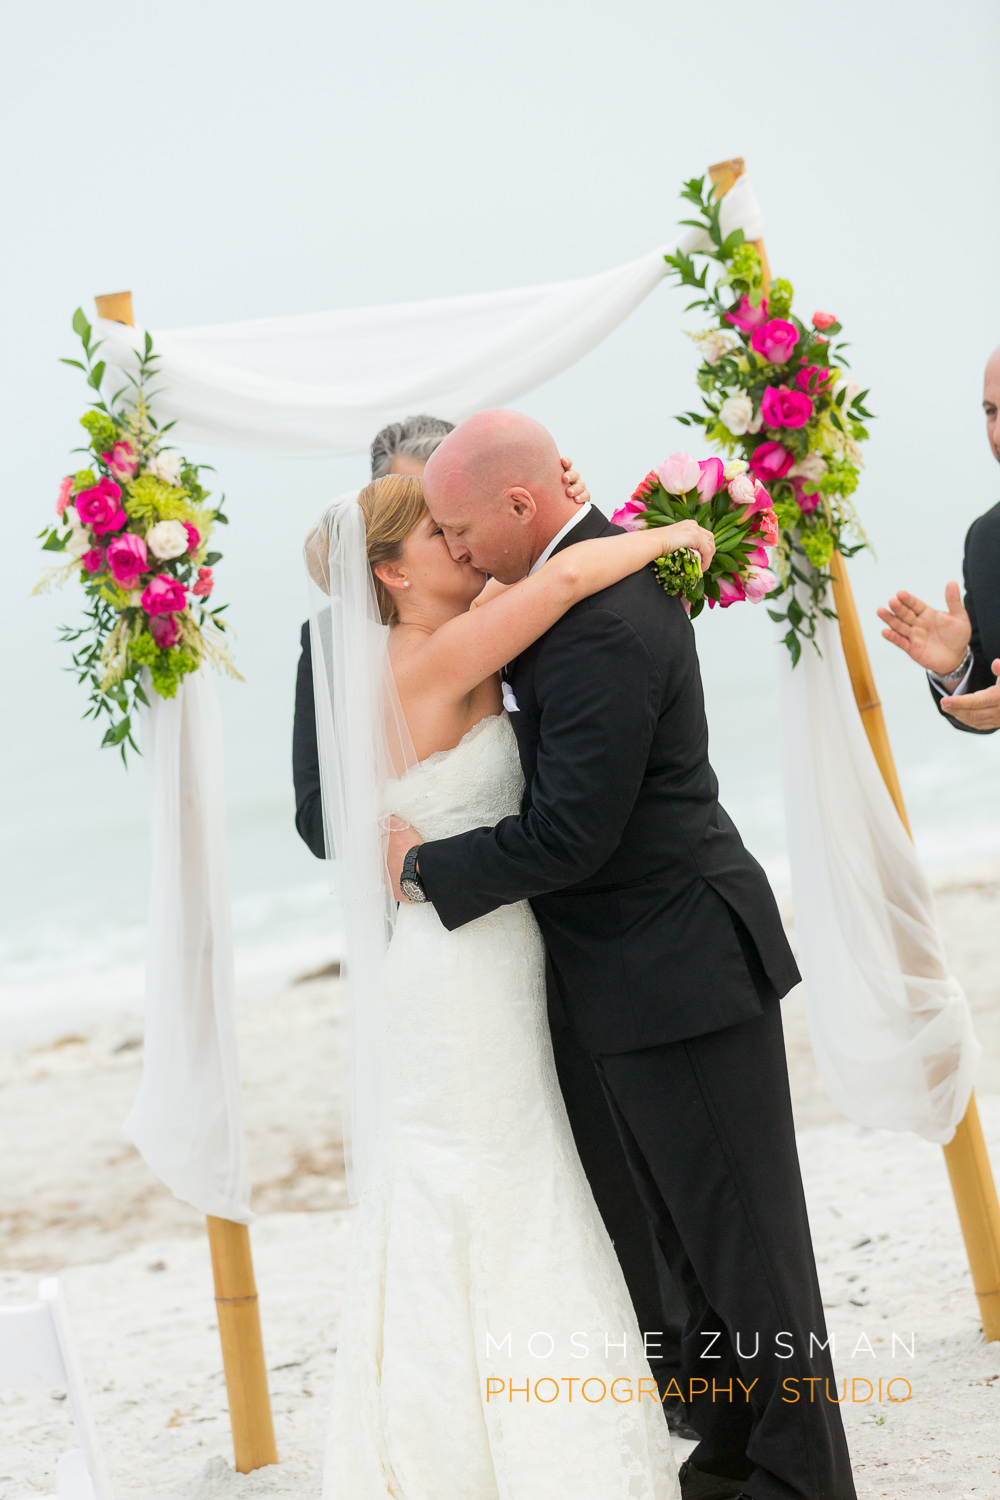 Sanibel-Island-Florida-Wedding-Moshe-Zusman-Photography-34.jpg